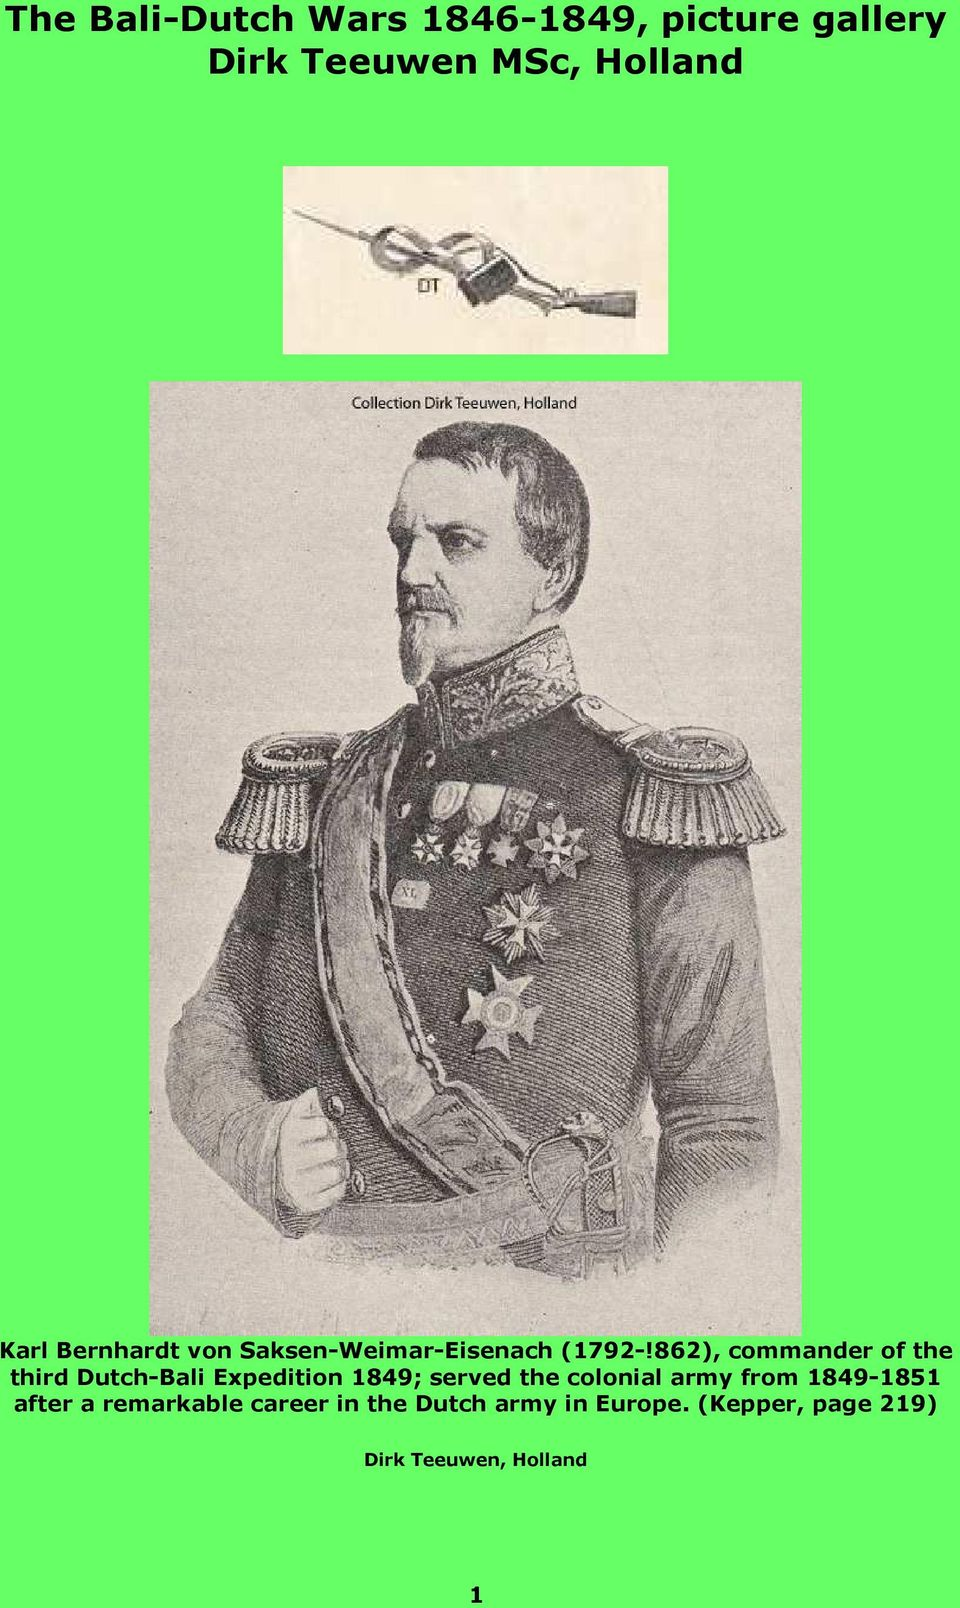 862), commander of the third Dutch-Bali Expedition 1849; served the colonial